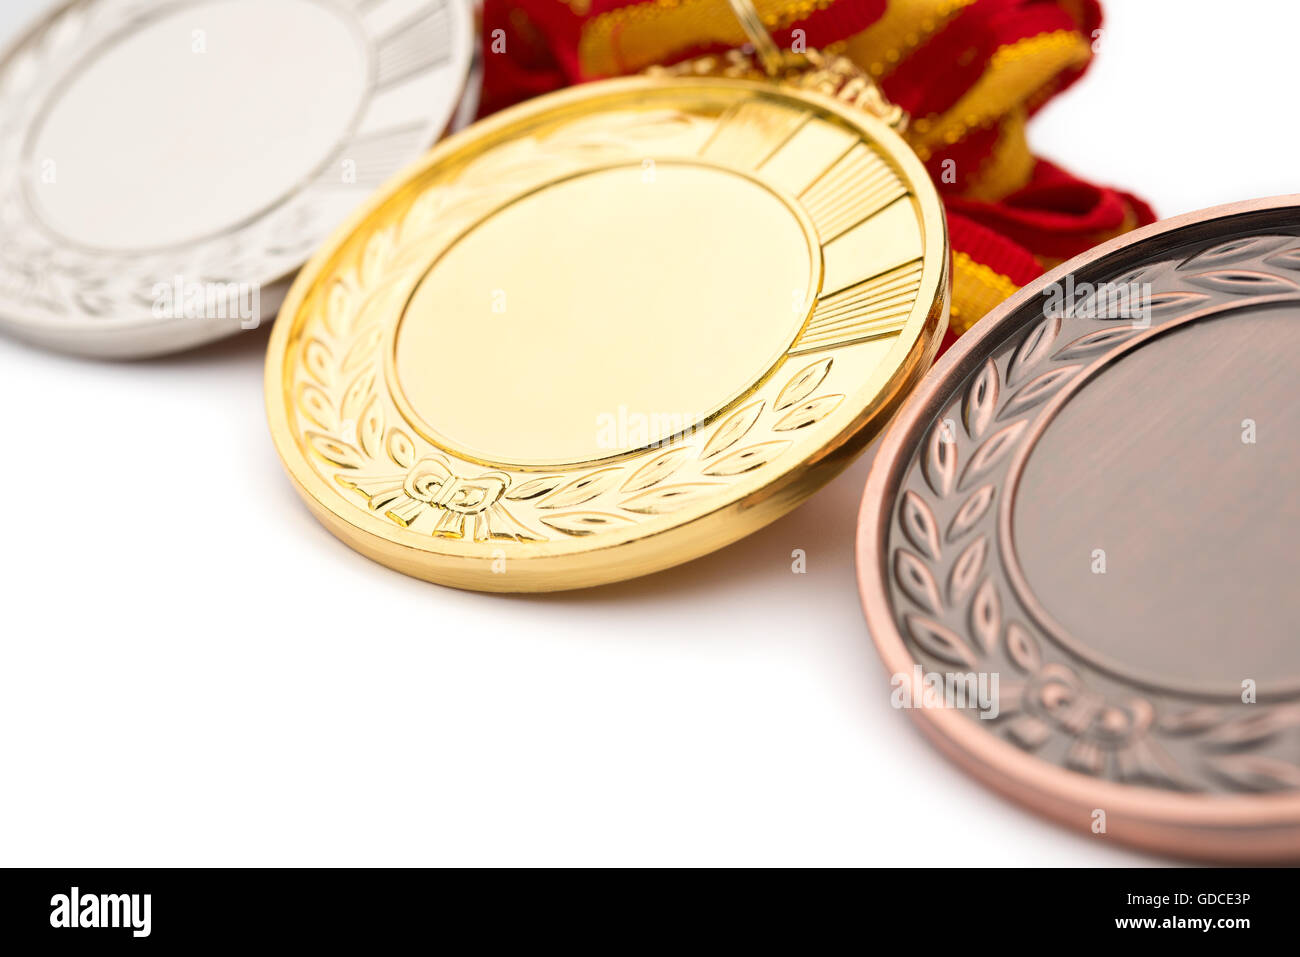 set of gold silver and bronze award medals on white background - Stock Image